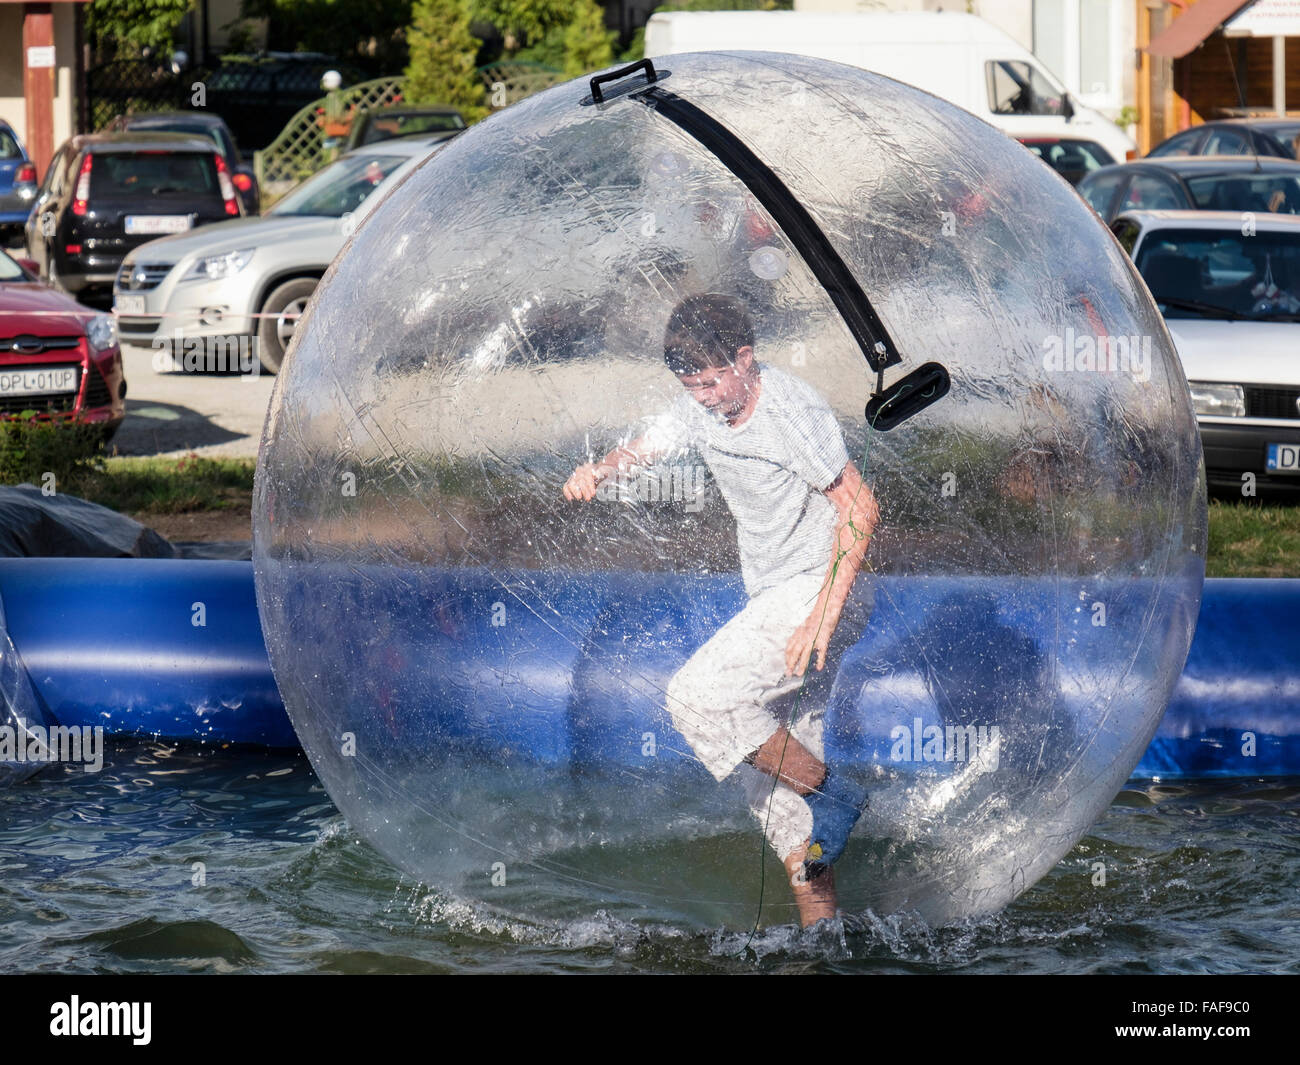 Boy standing up running in an inflatable ball bubble zorbing on a pool of water. Polanica-Zdroj, Klodzko, Poland, Stock Photo